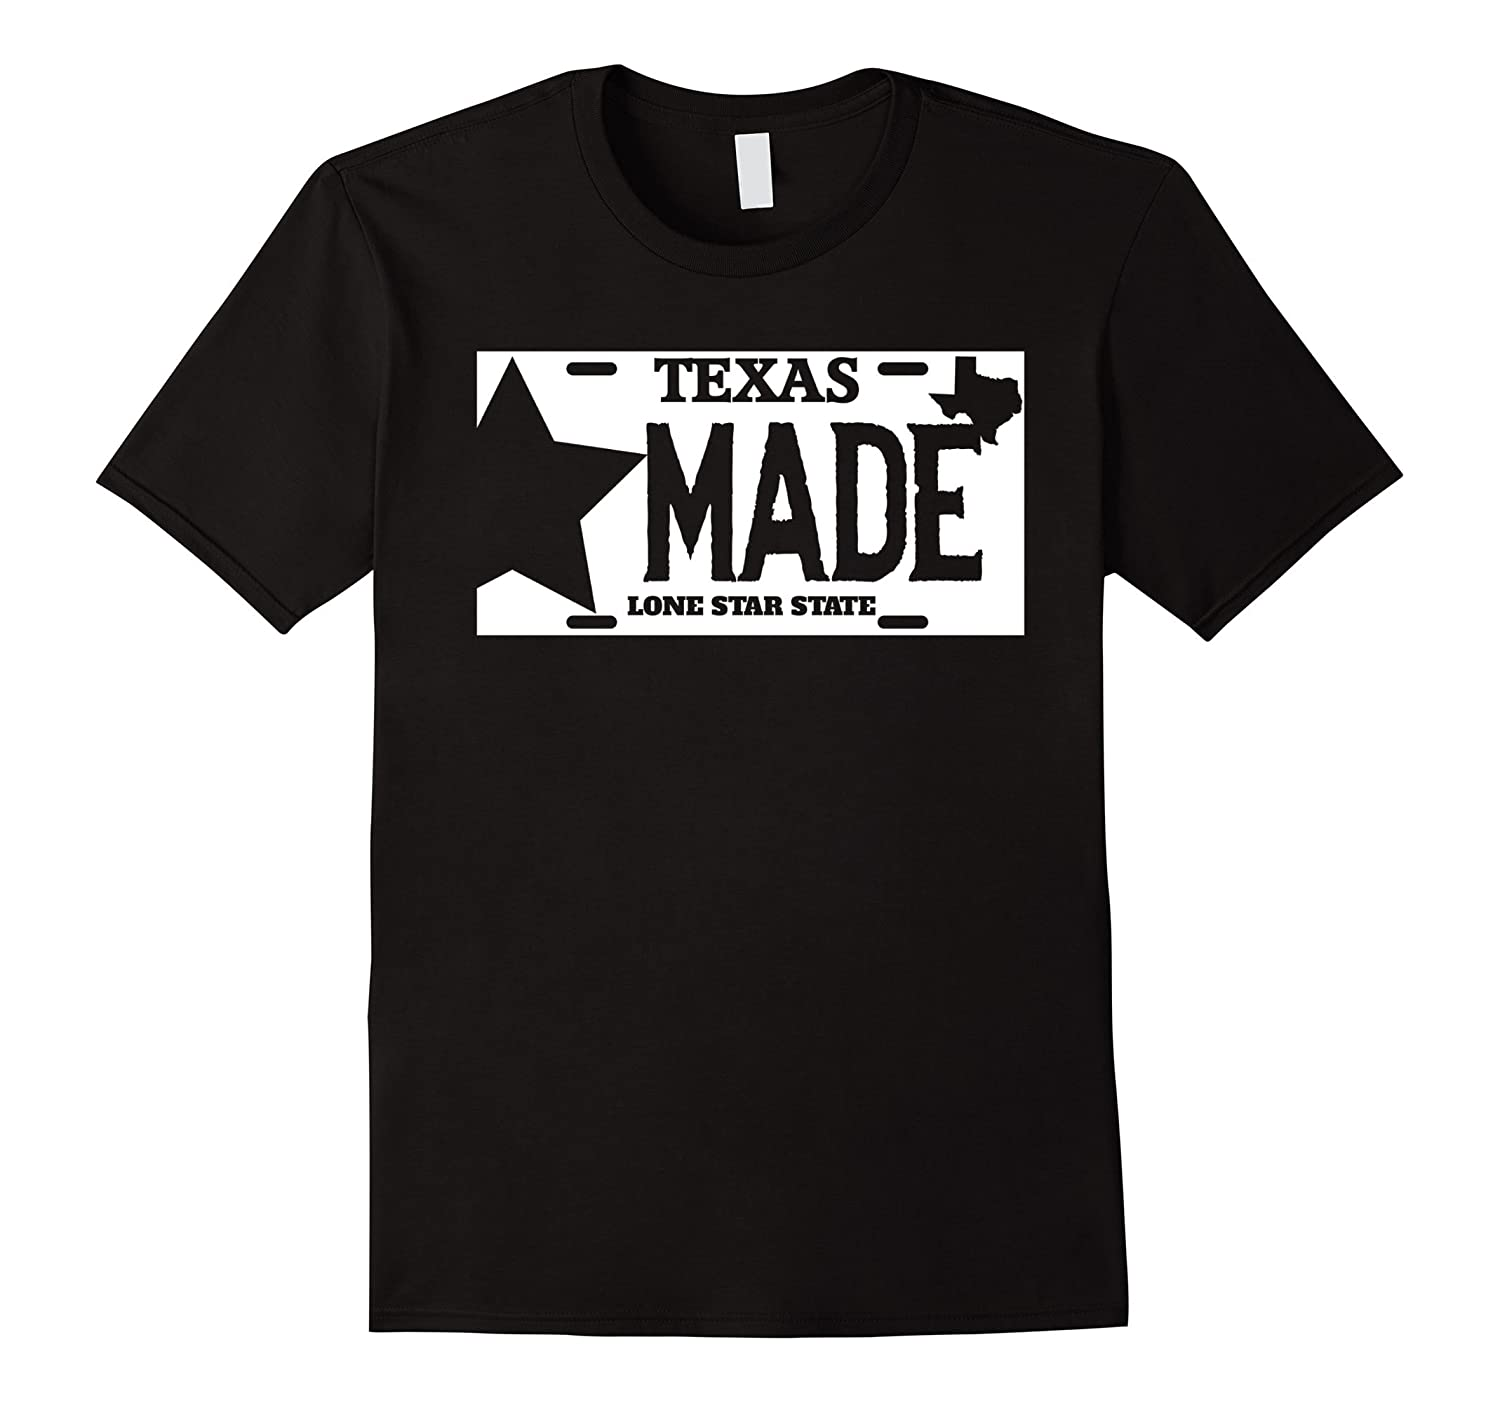 Texas made lone star license plate t shirt rt rateeshirt for T shirt licensing agreement